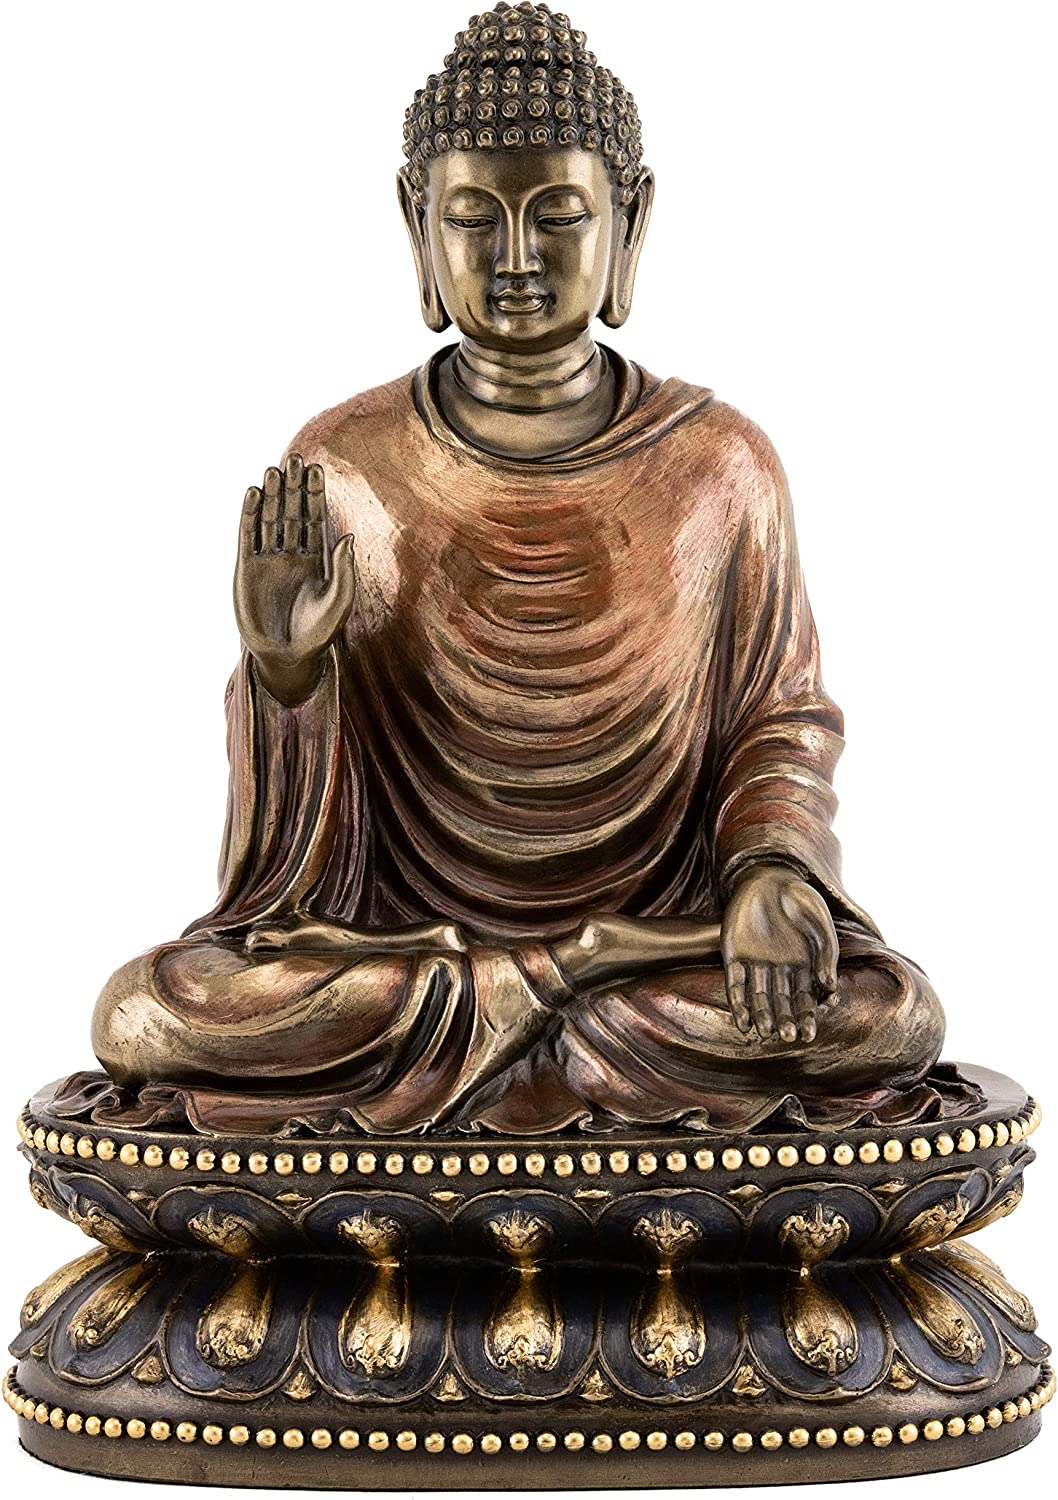 Amazon Com Top Collection Meditating Shakyamuni Buddha Statue Touching The Earth The Enlightened One Sculpture In Premium Cold Cast Bronze 9 Inch Supreme Buddha Figurine Home Kitchen